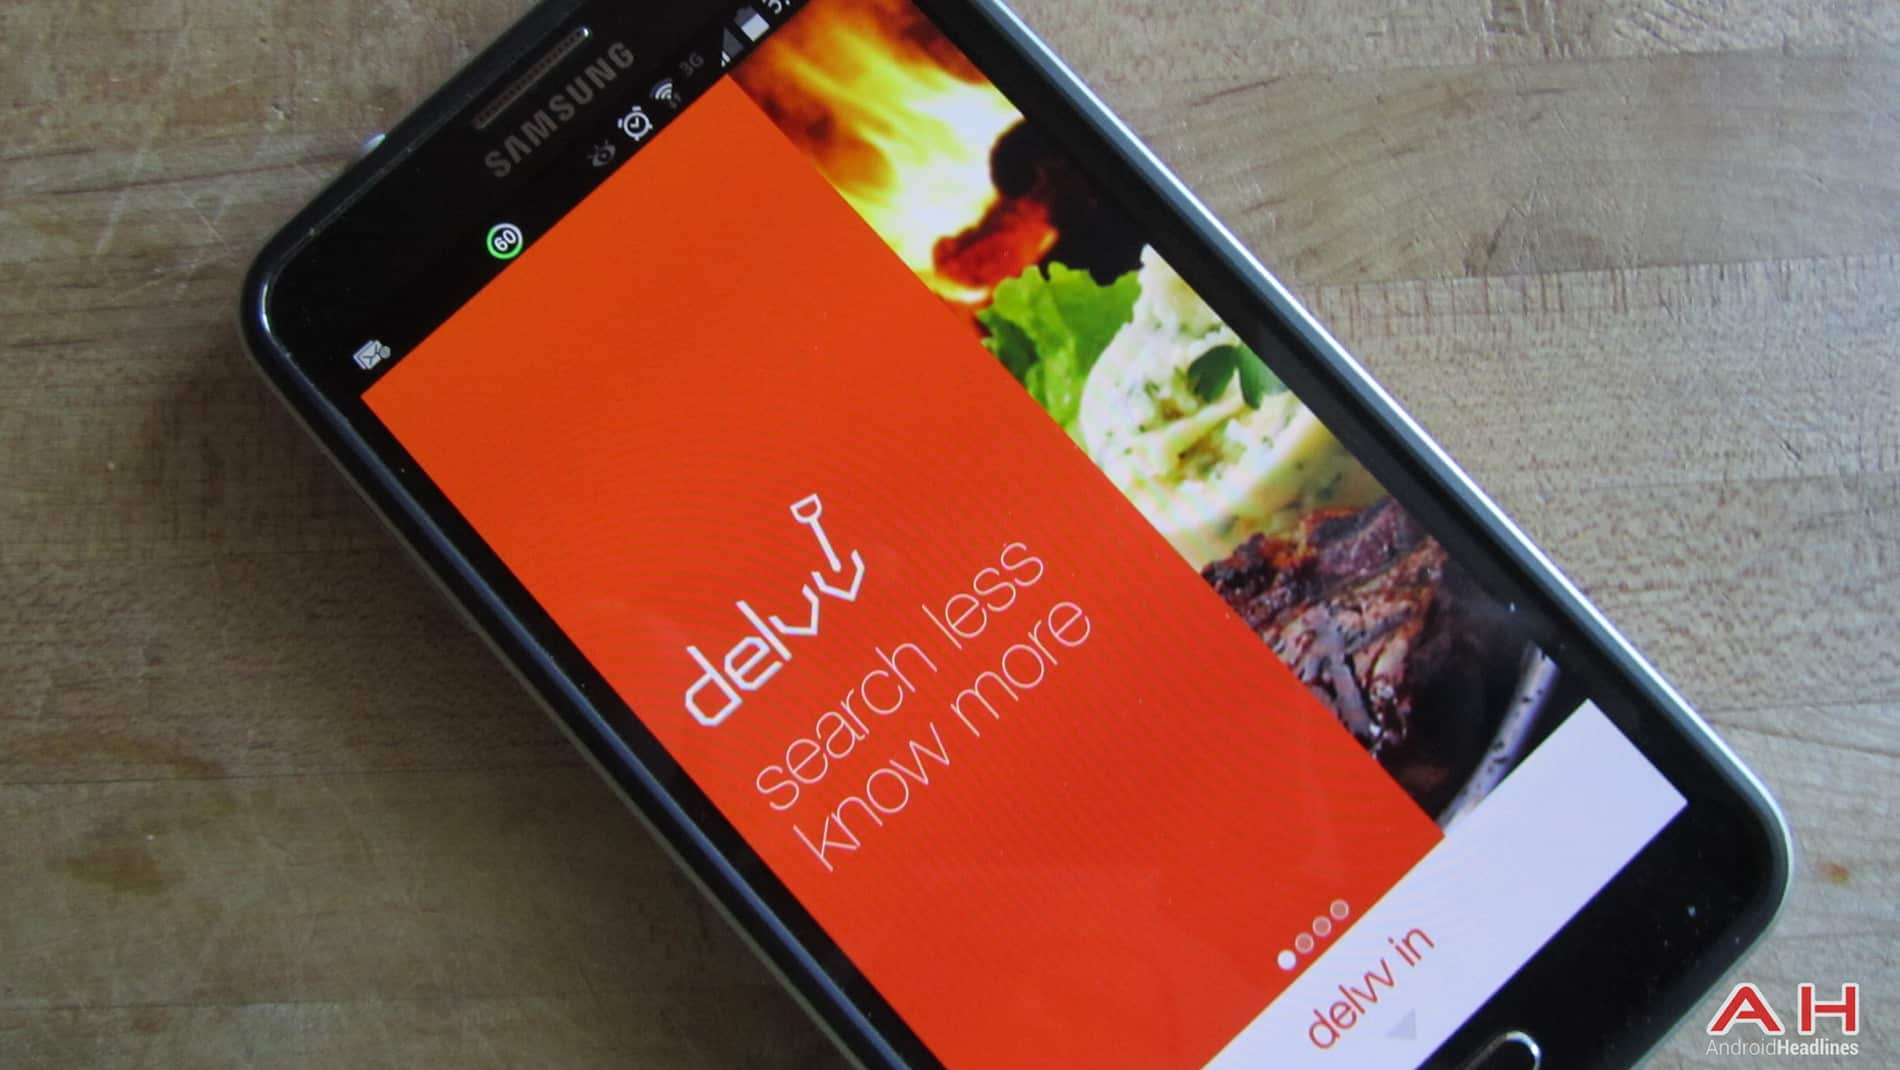 Tackle Information Overload: Let the New App, Delvv Through the Mess